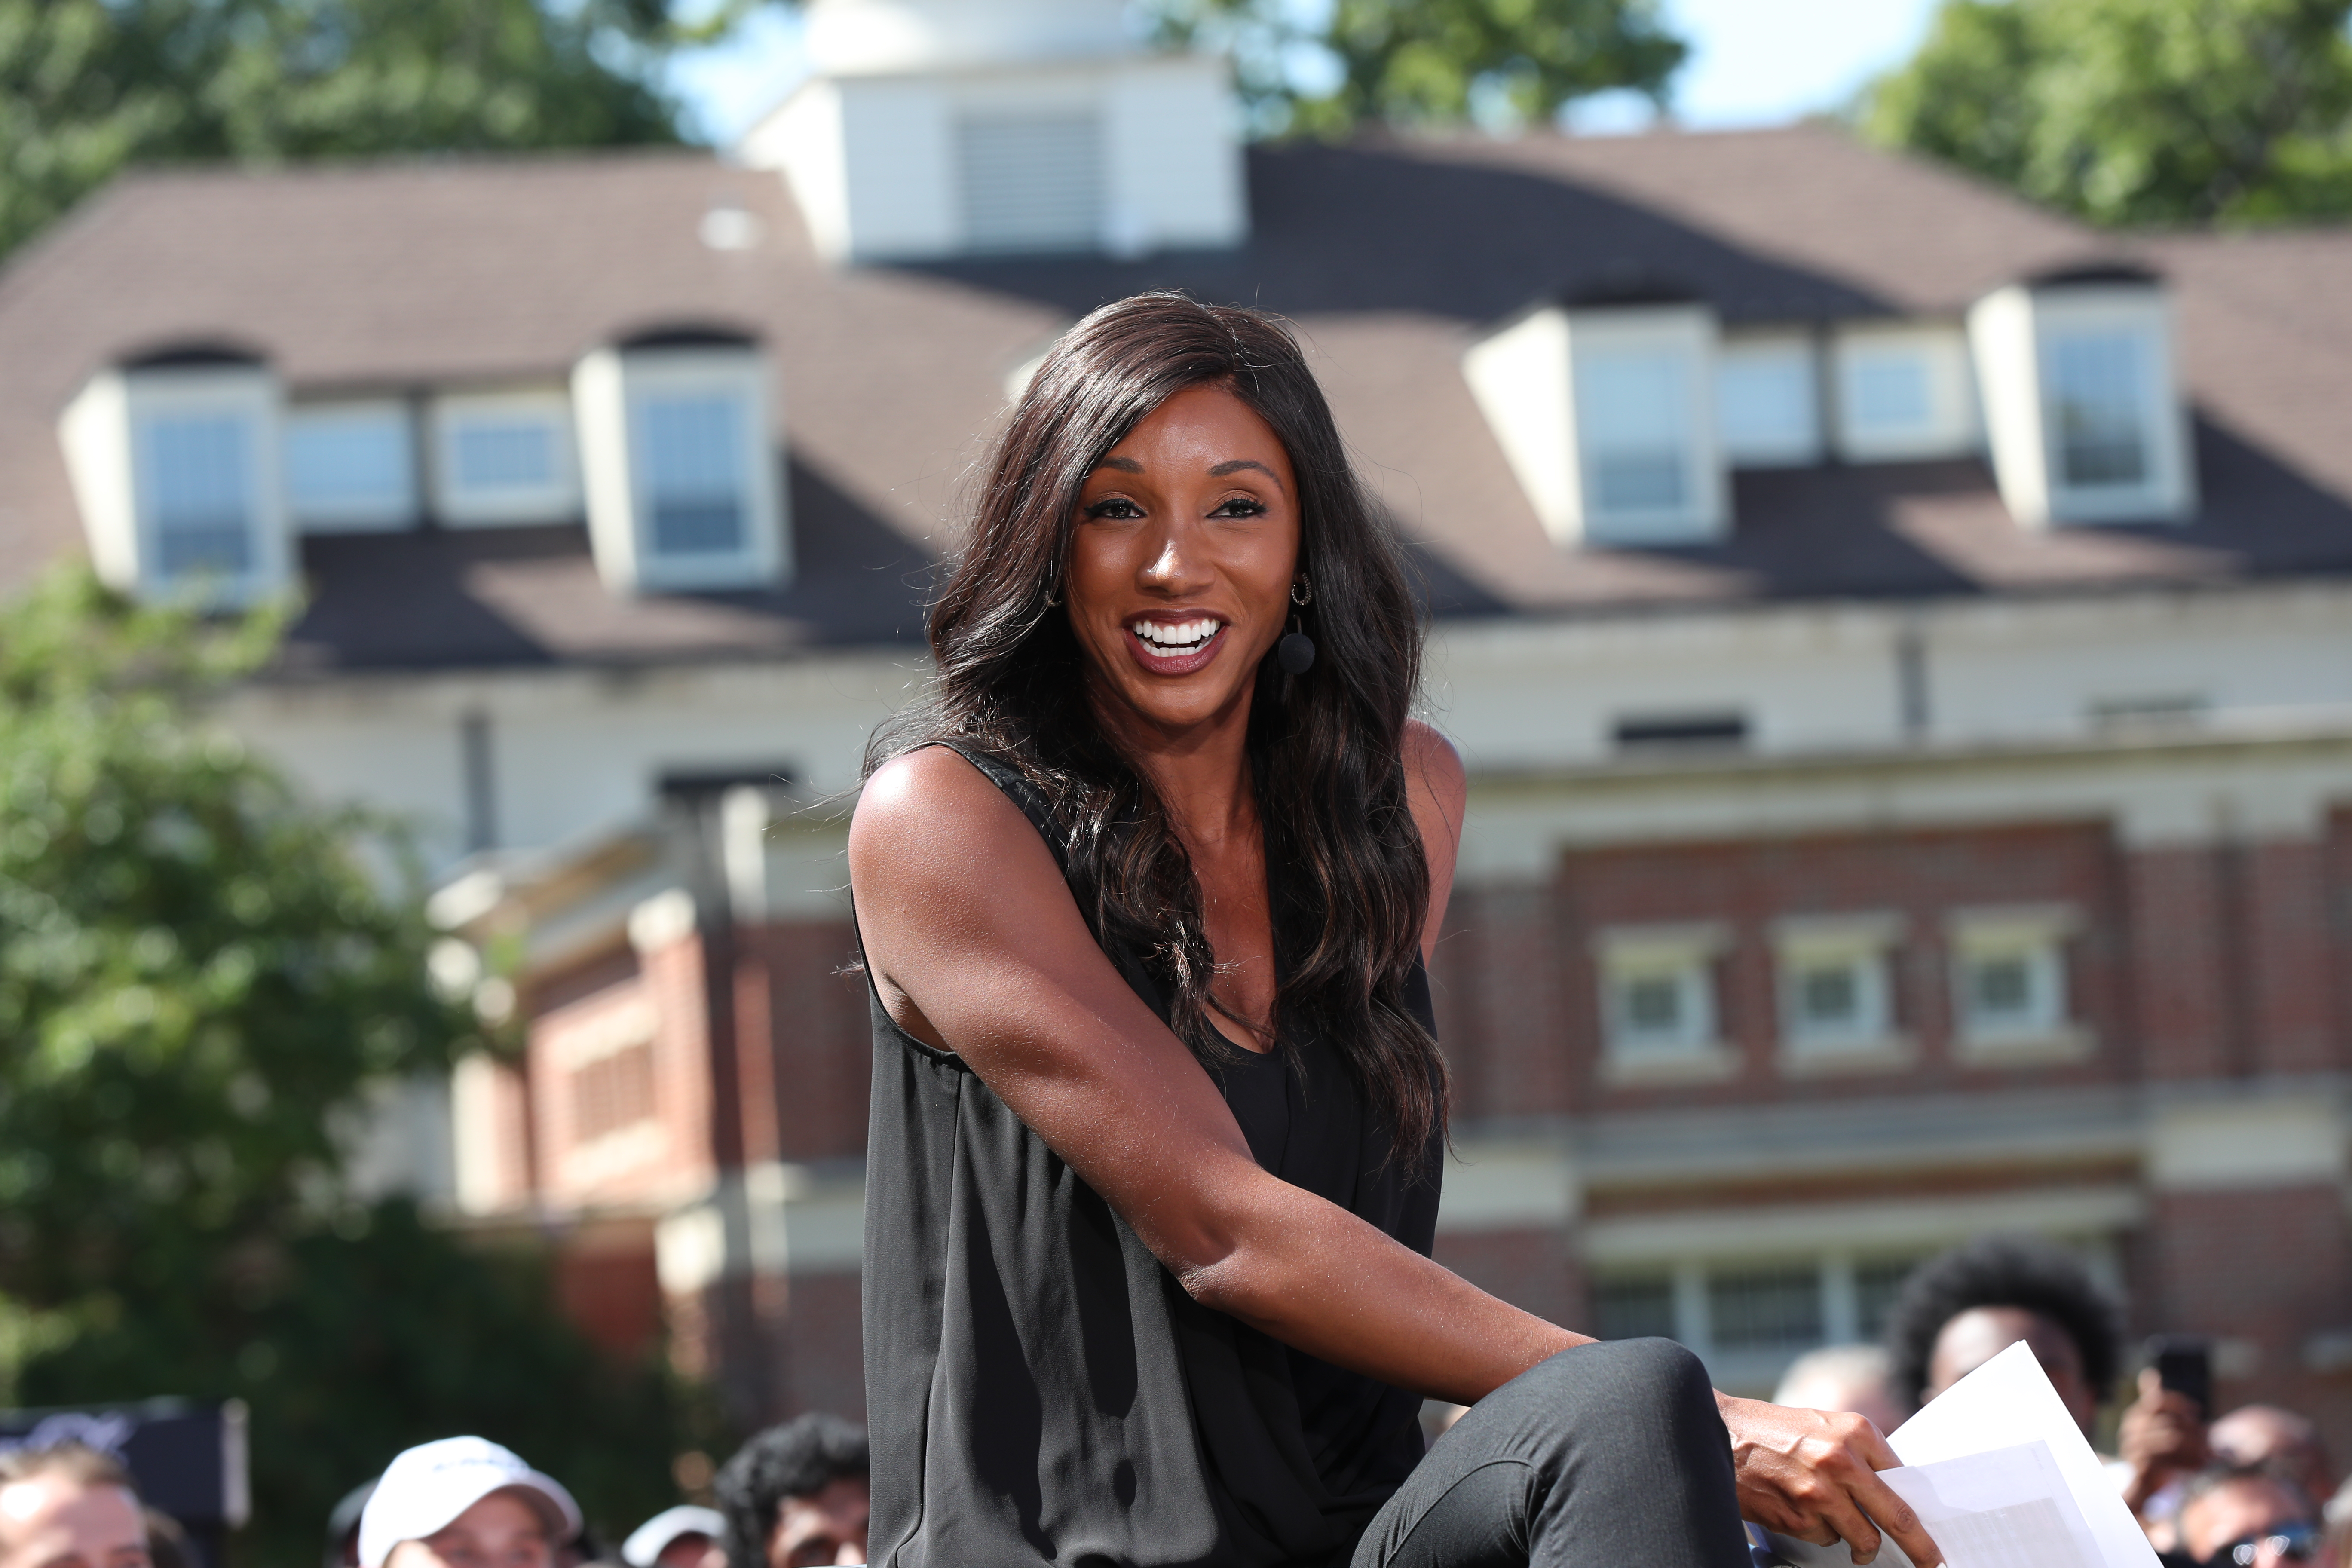 Espn S Maria Taylor Has A Message For Women Who Want To Work In Sports